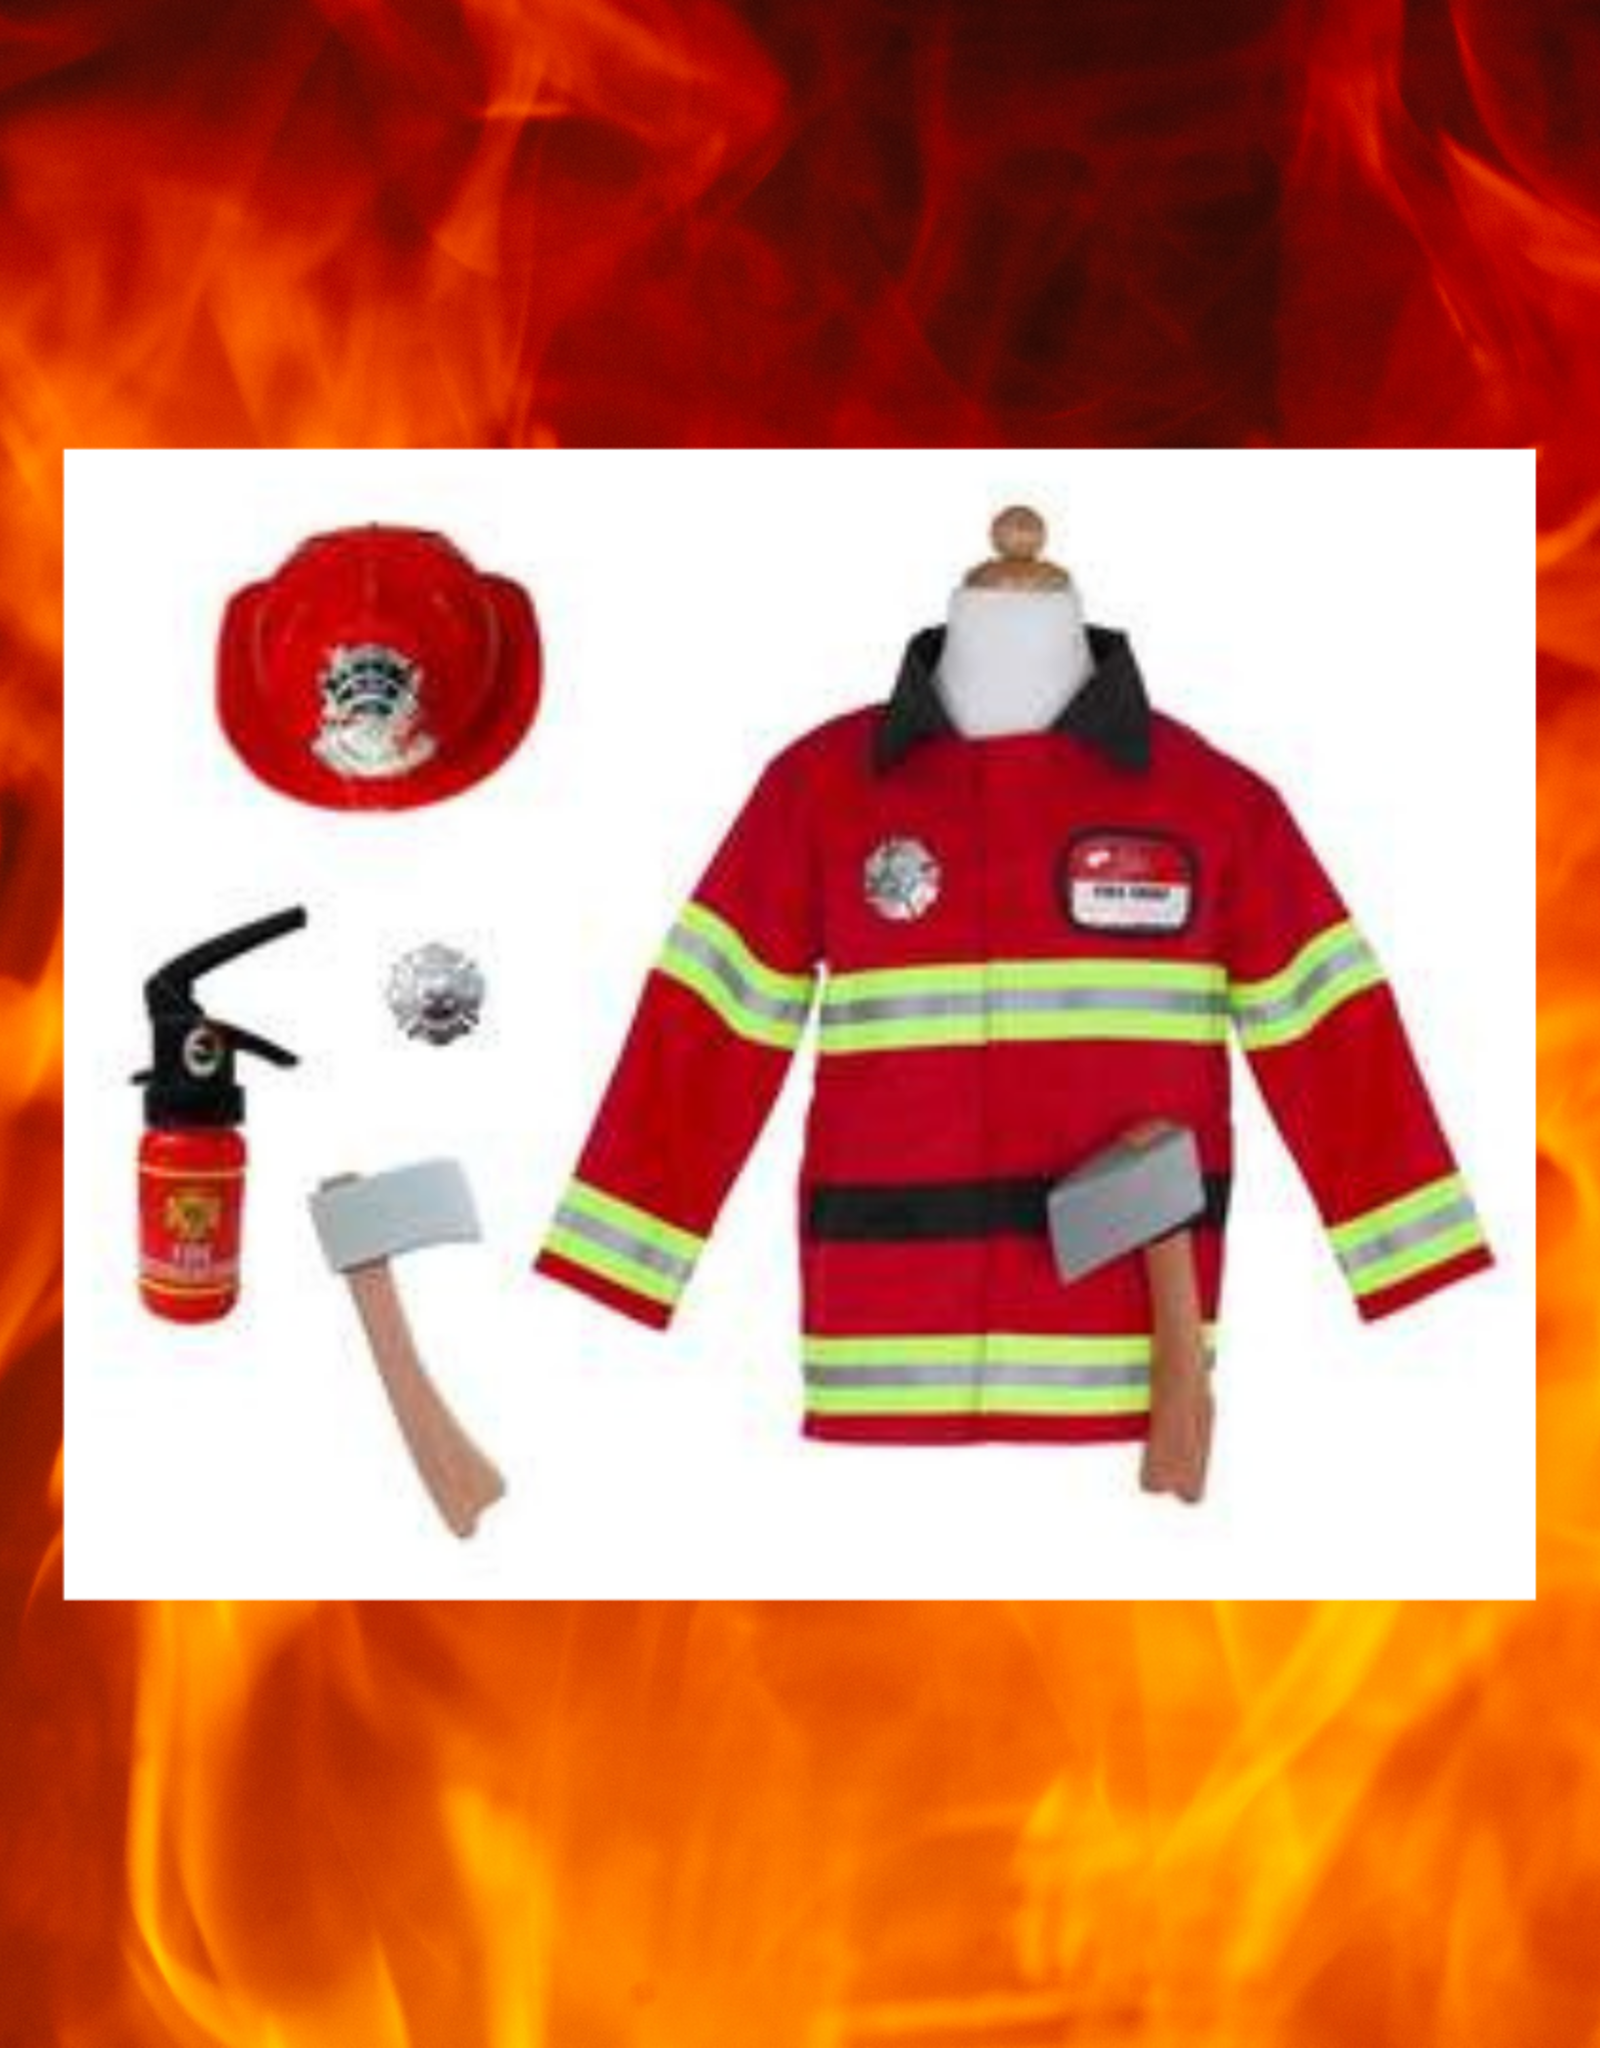 CREATIVE EDUCATION OF CANADA / GREAT PRETENDERS FIREFIGHTER  5 PC